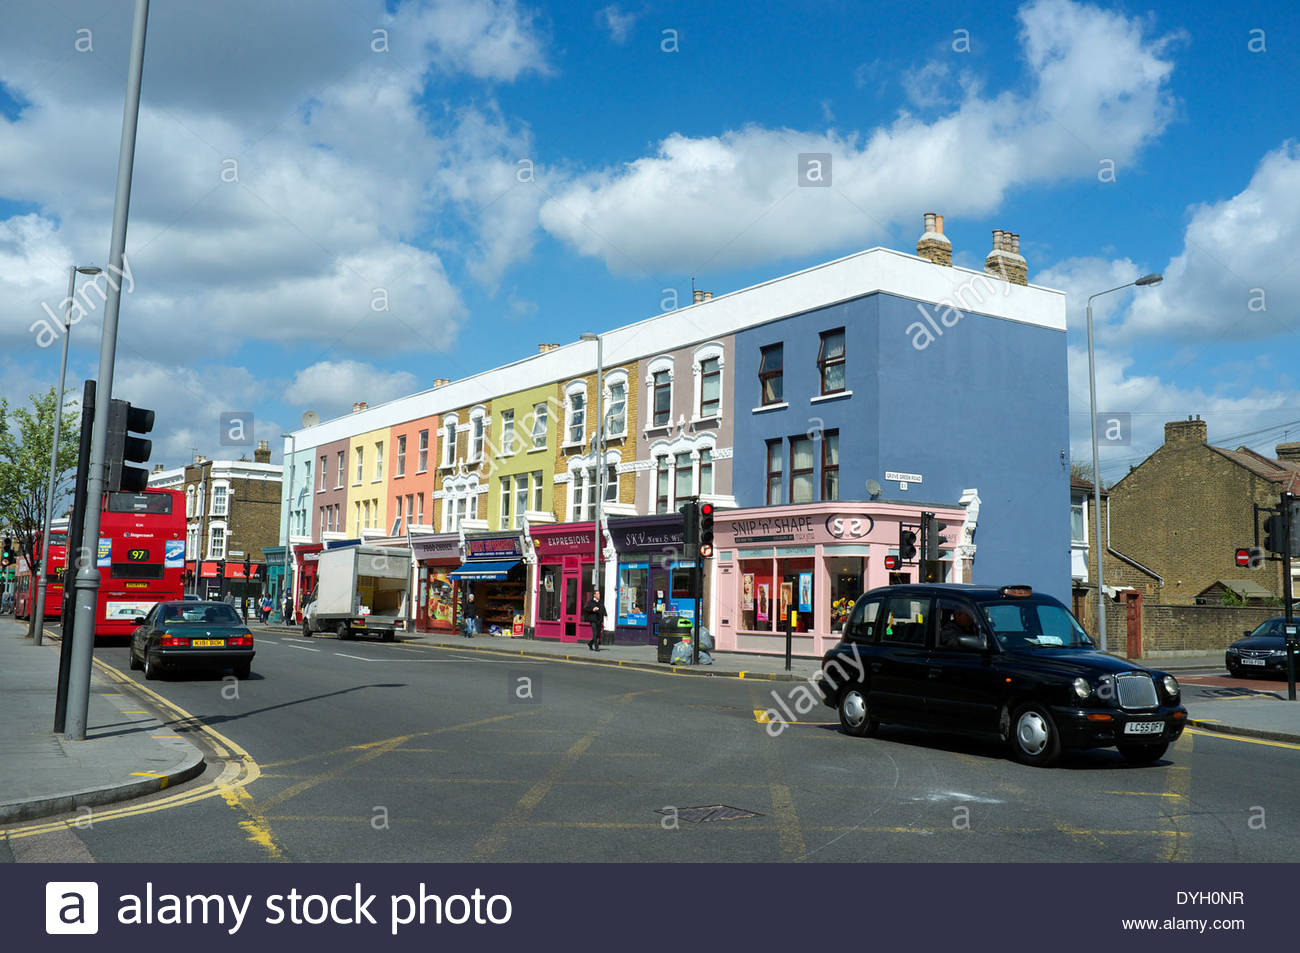 Colourful buildings in High Road Leyton, in Leyton, east London, UK. Stock Photo